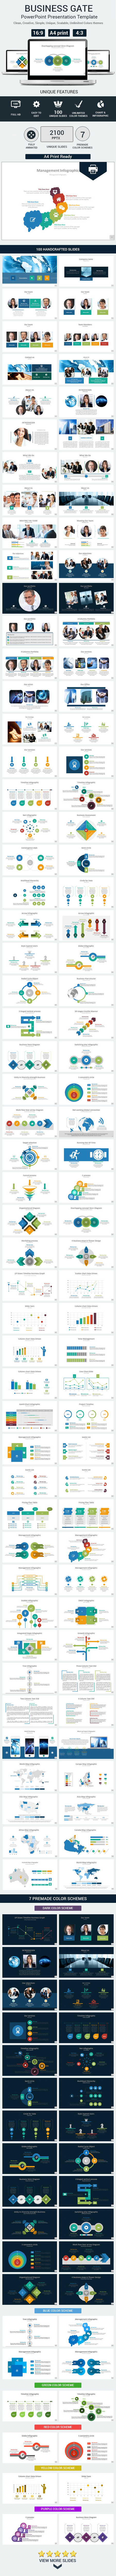 GraphicRiver Business Gate PowerPoint Presentation Template 11056786